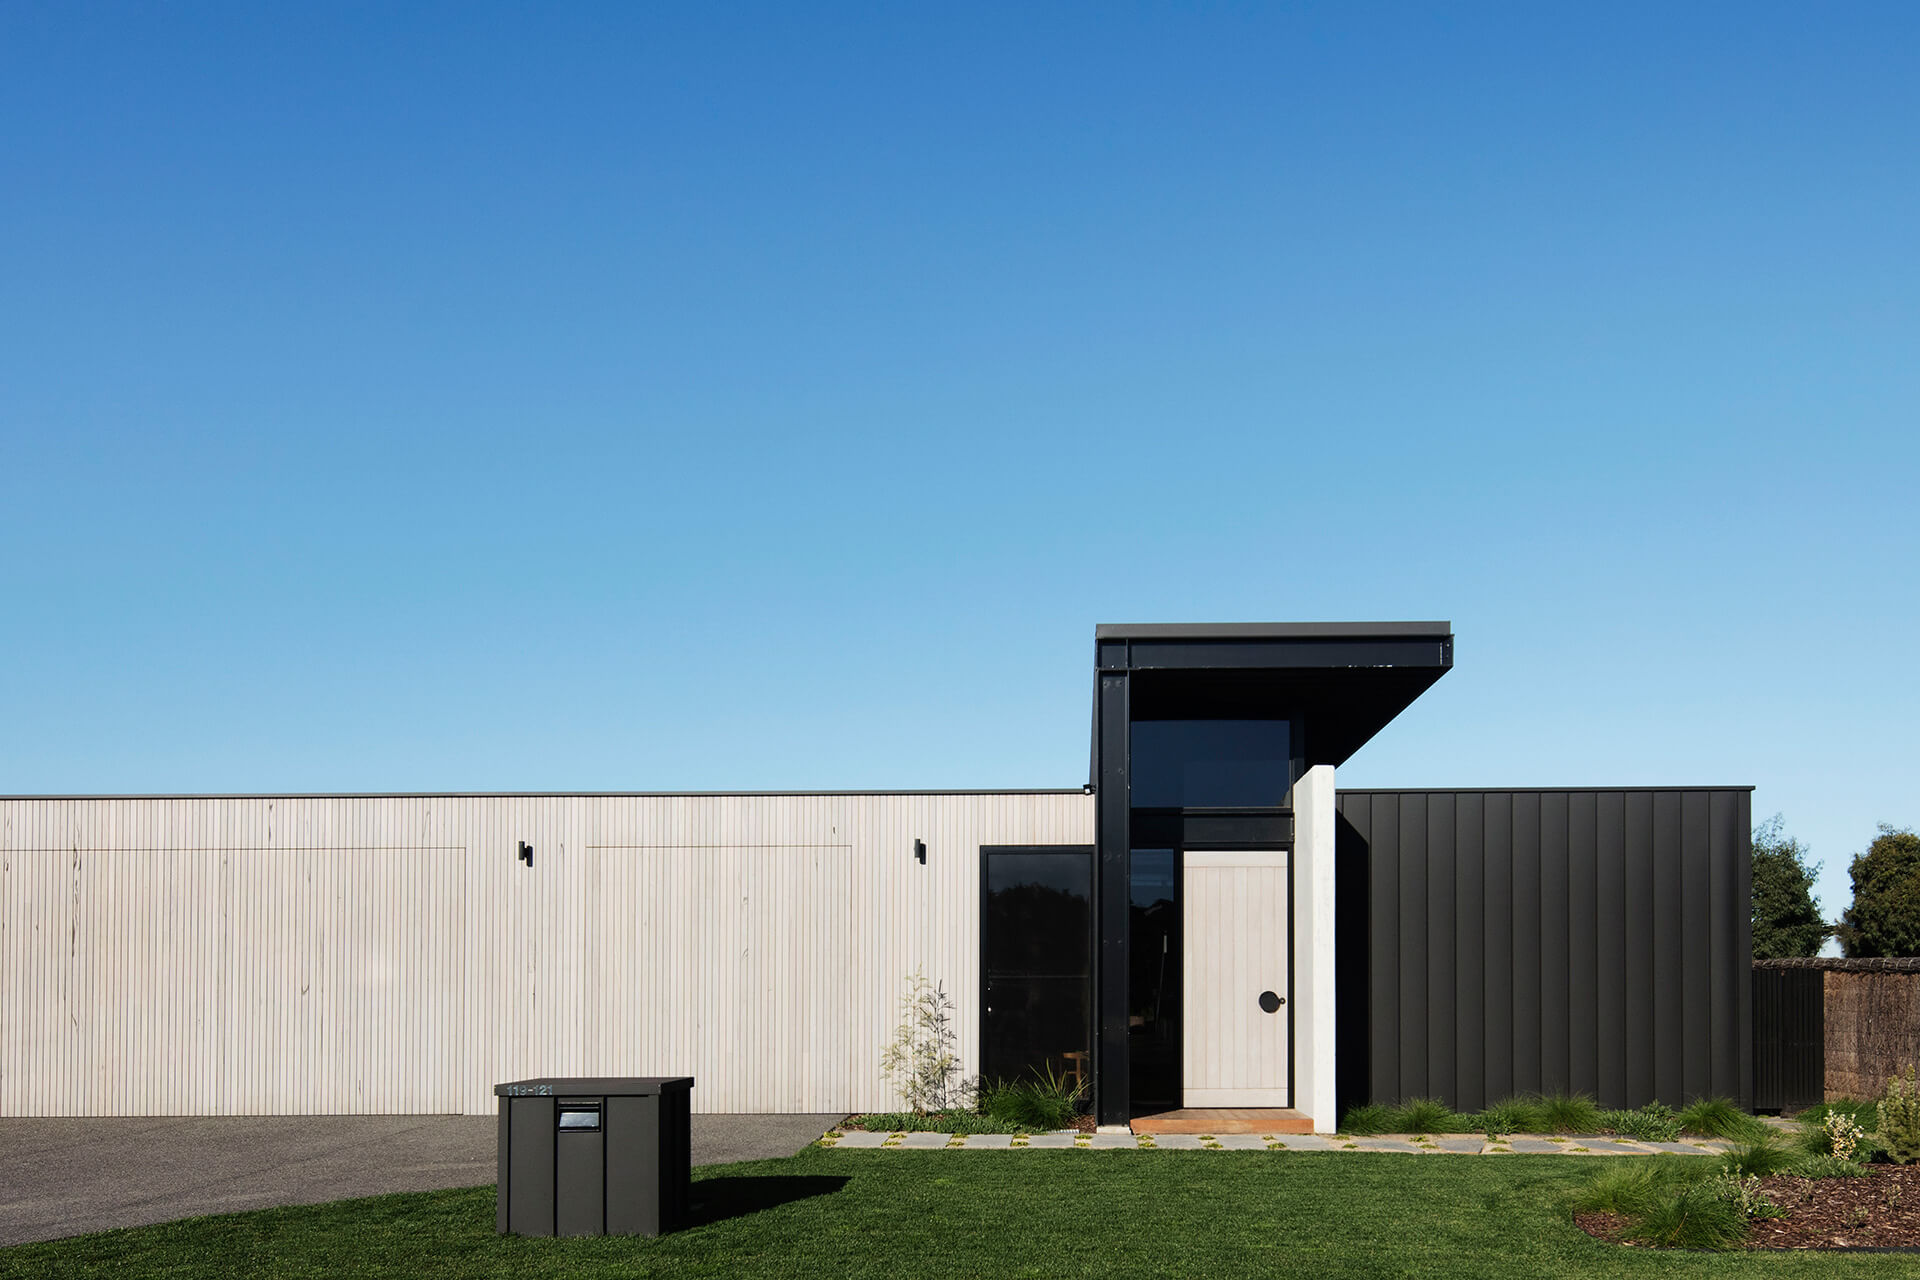 The external façade of the house with a structural appearance | Cashmore House | Lachlan Shepherd Architects | STIRworld